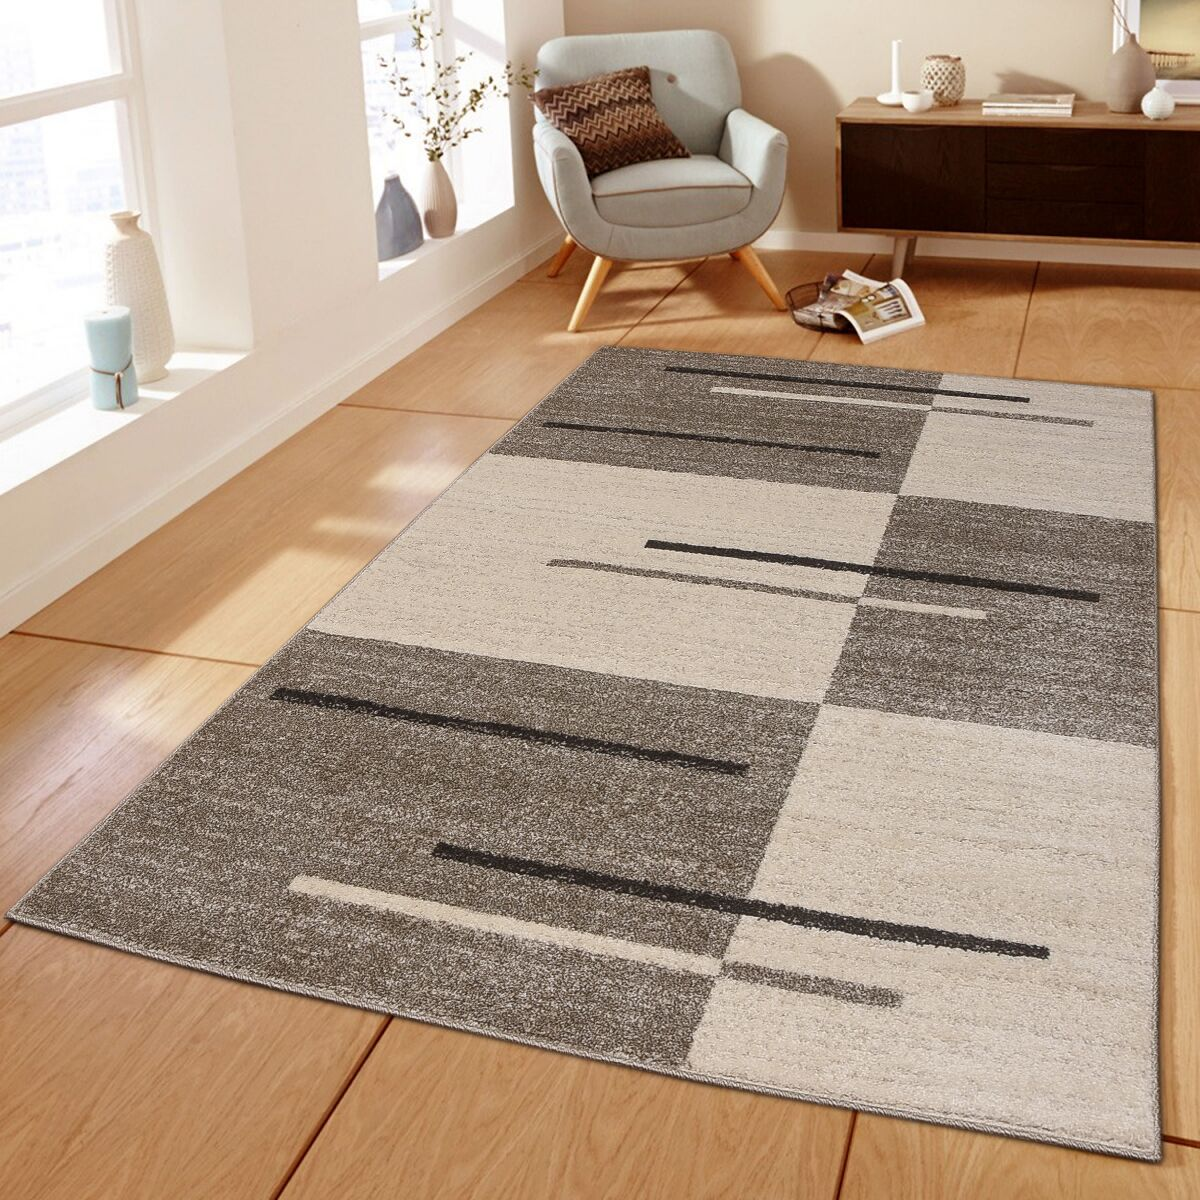 Swinehart Brown/Beige Area Rug Rug Size: Rectangle 8' x 10'